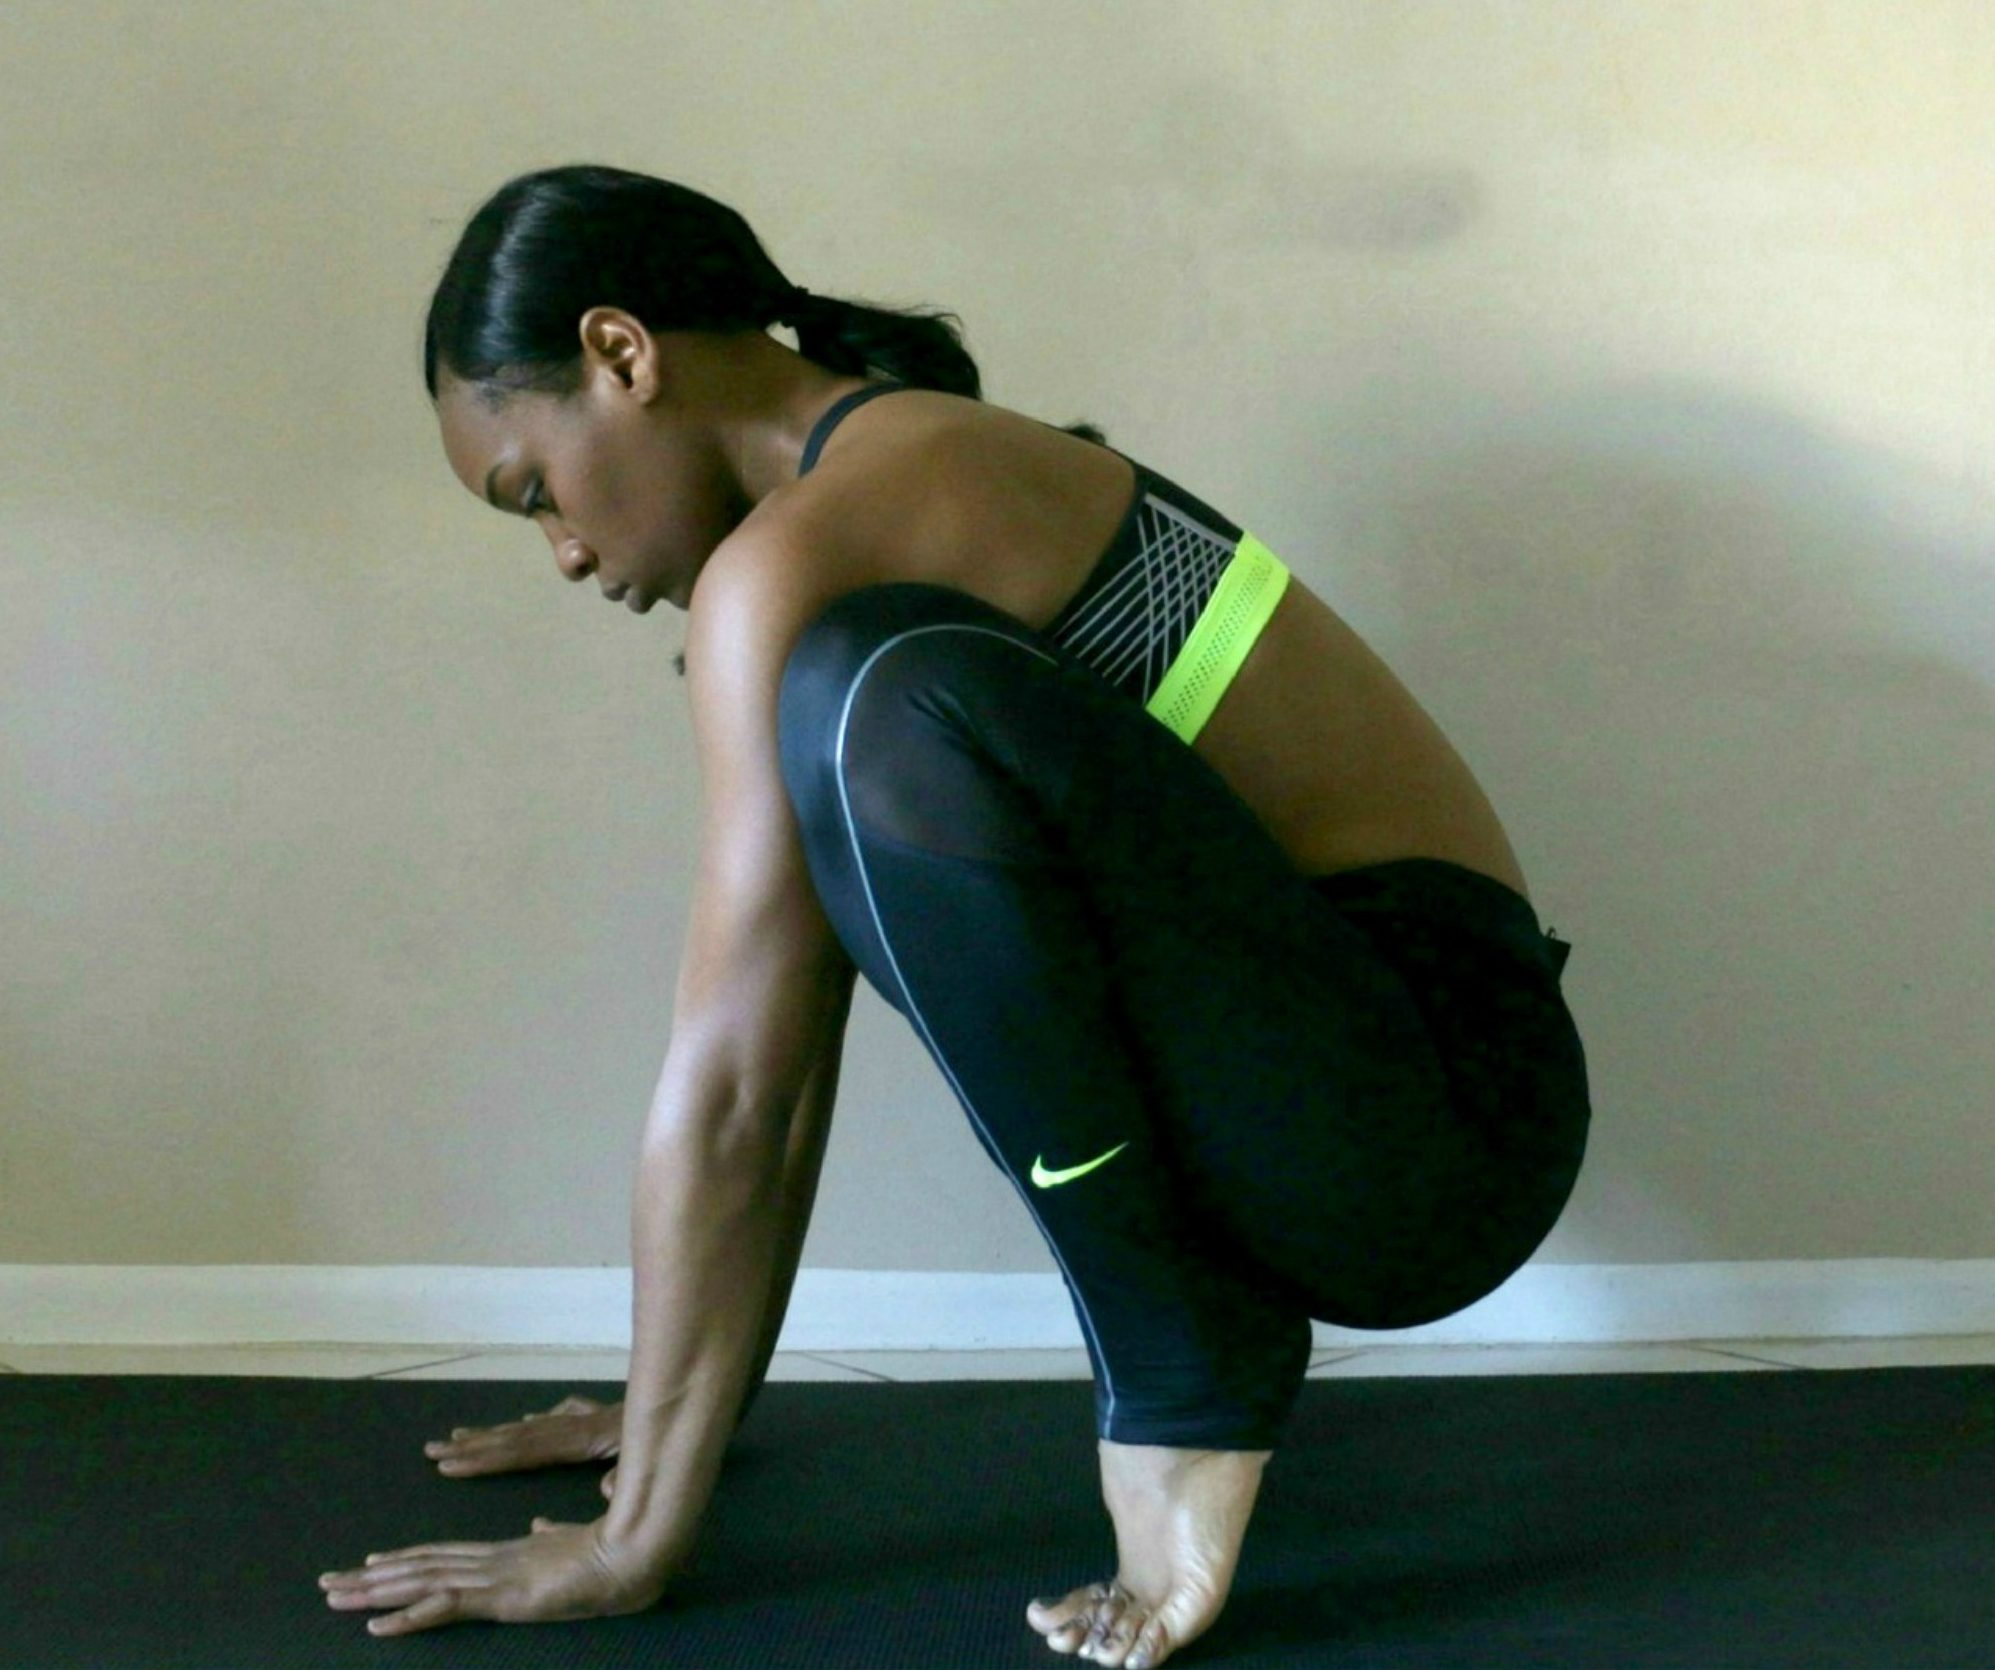 bakasana-step-one-squat-pinterest-tutorial-crow-crane-pose-for-yoga-beginners-tutorial-how-to-easy-beauty-and-the-beat-blog